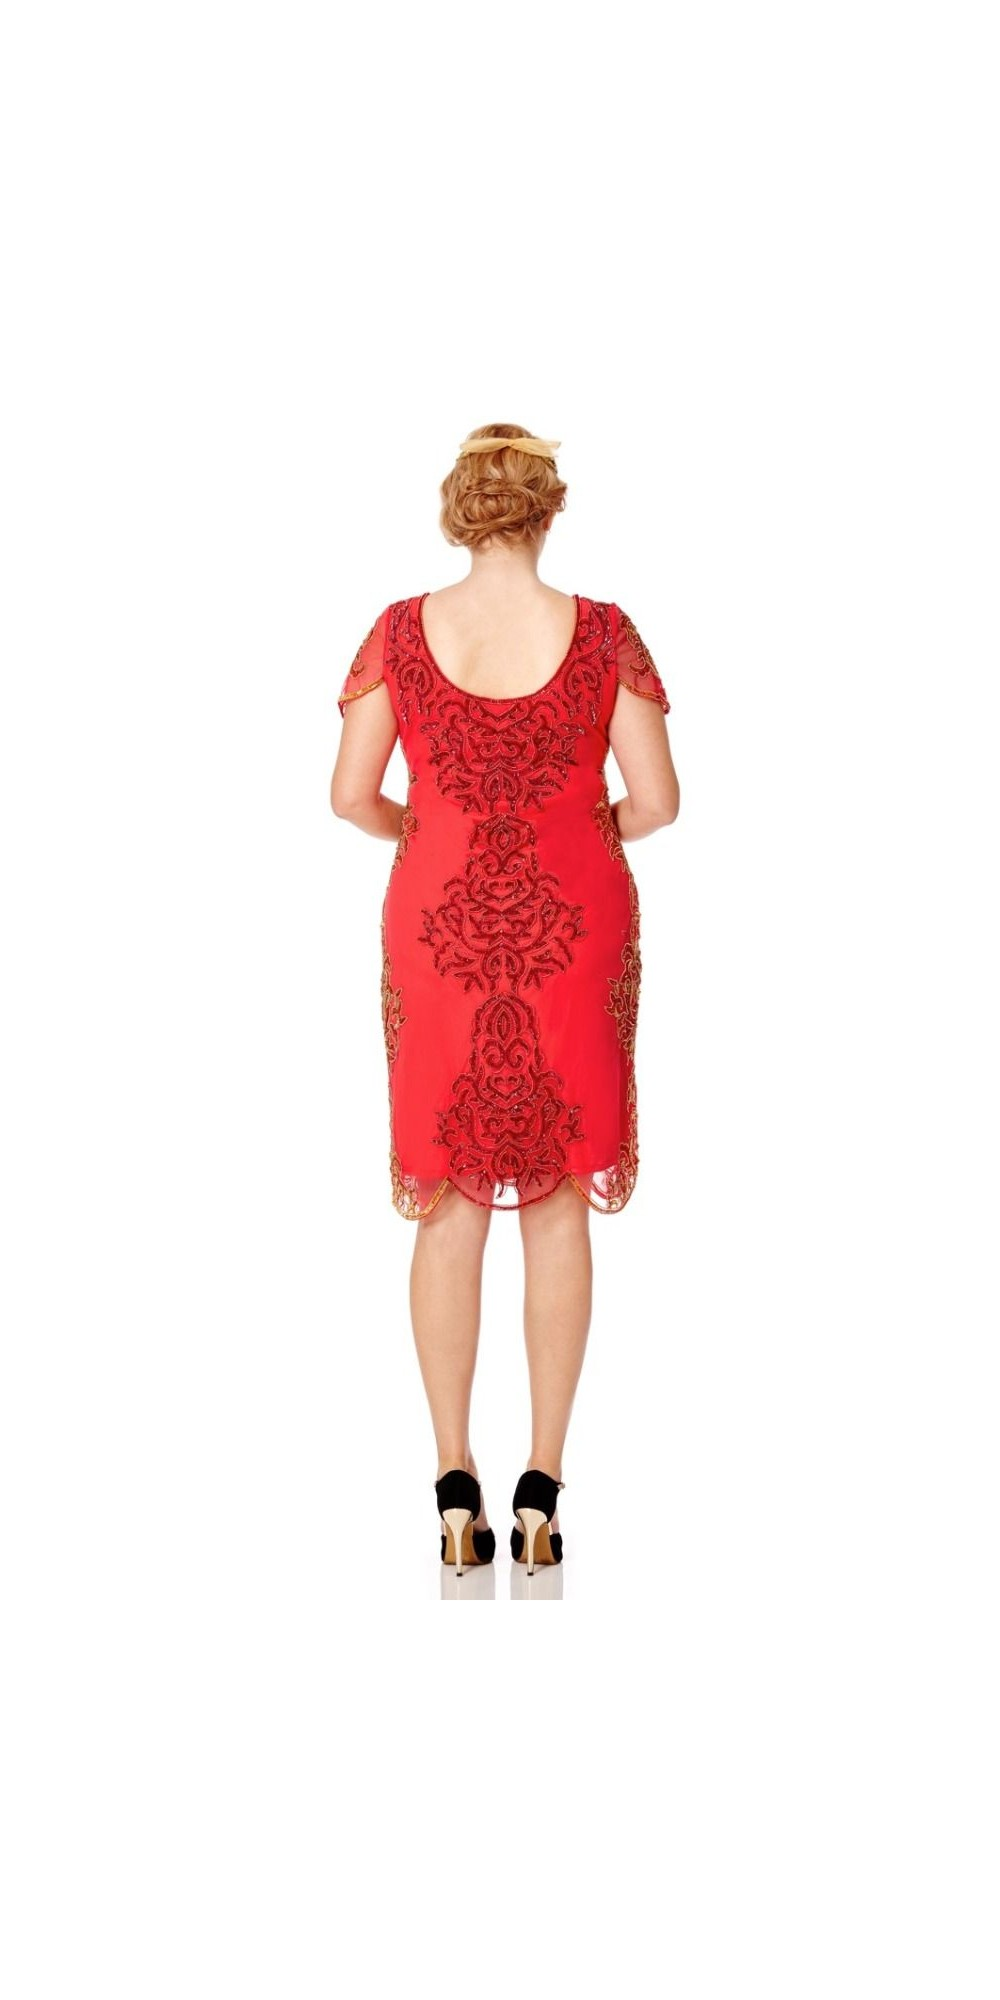 Great Gatsby Style Party Dress in Bright Red